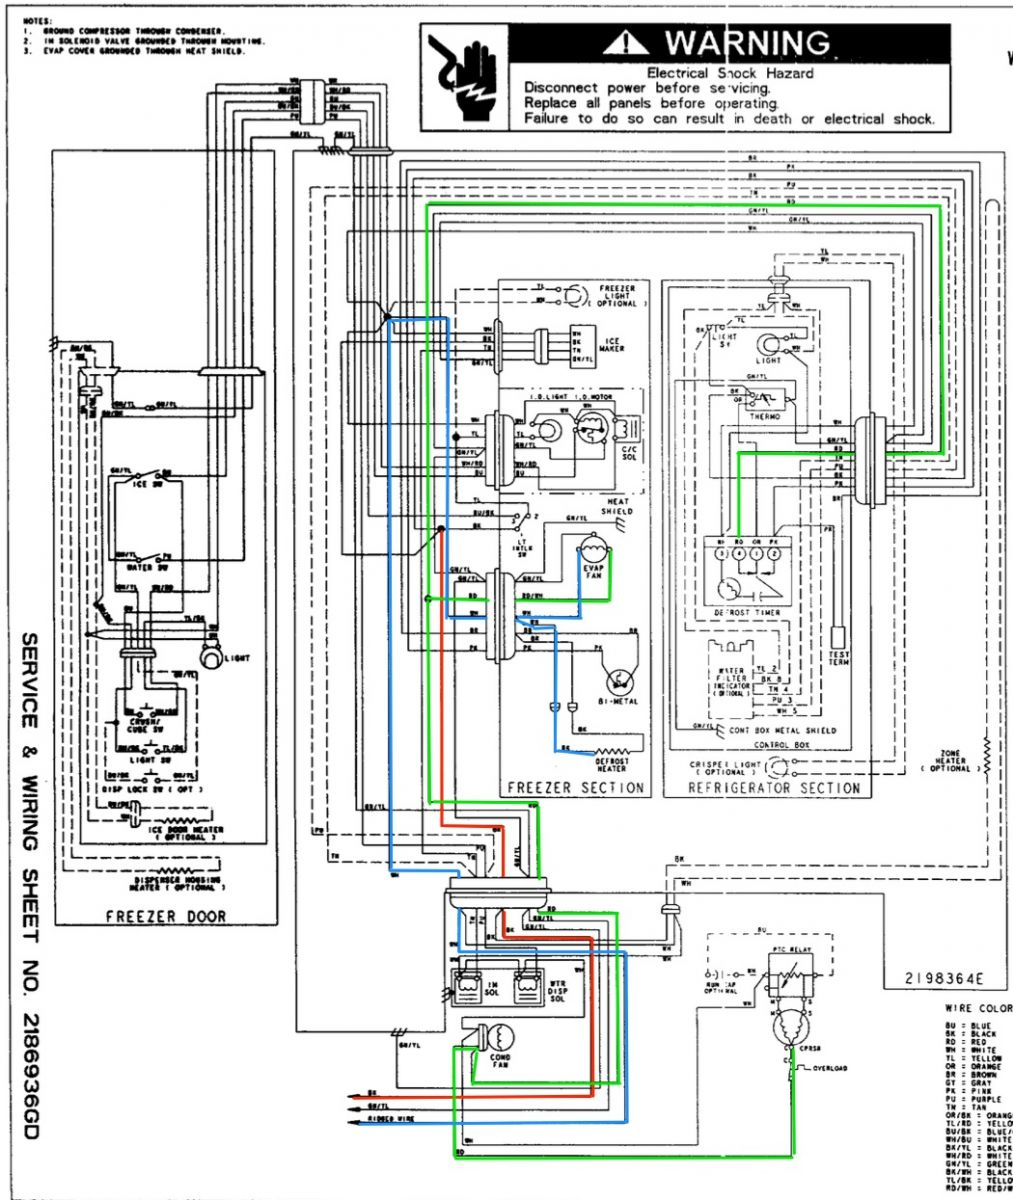 gallery_4_4_346879 whirlpool ed25rfxfw01 refrigerator wiring diagram the Google Wiring Steel Building at creativeand.co